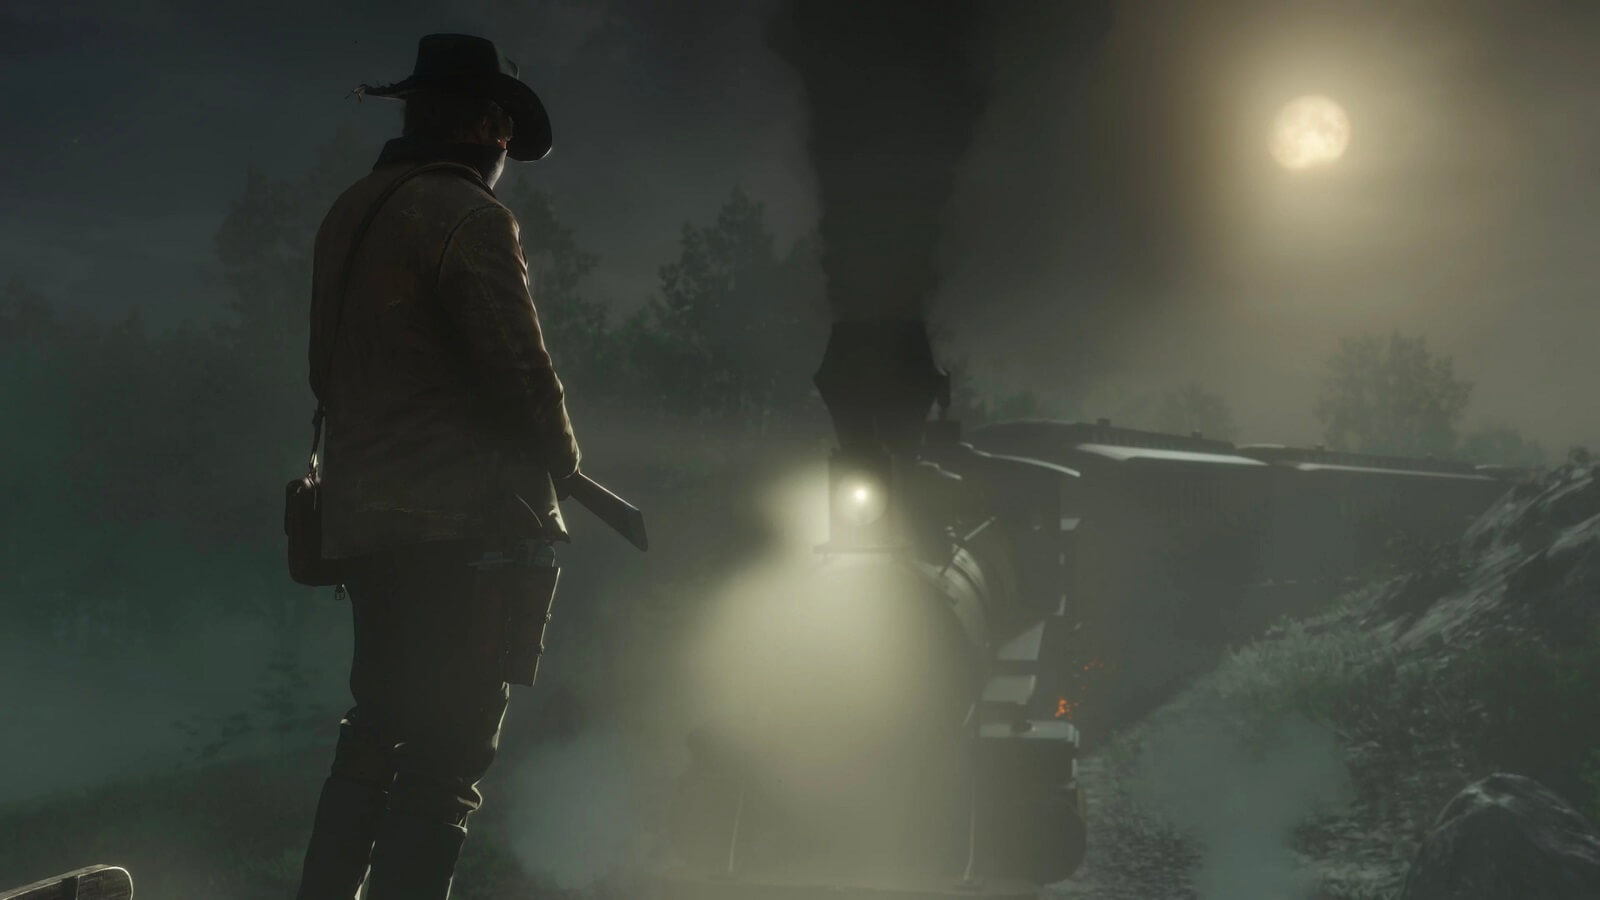 Review Roundup: Red Dead Redemption 2 - 2018's game of the year?